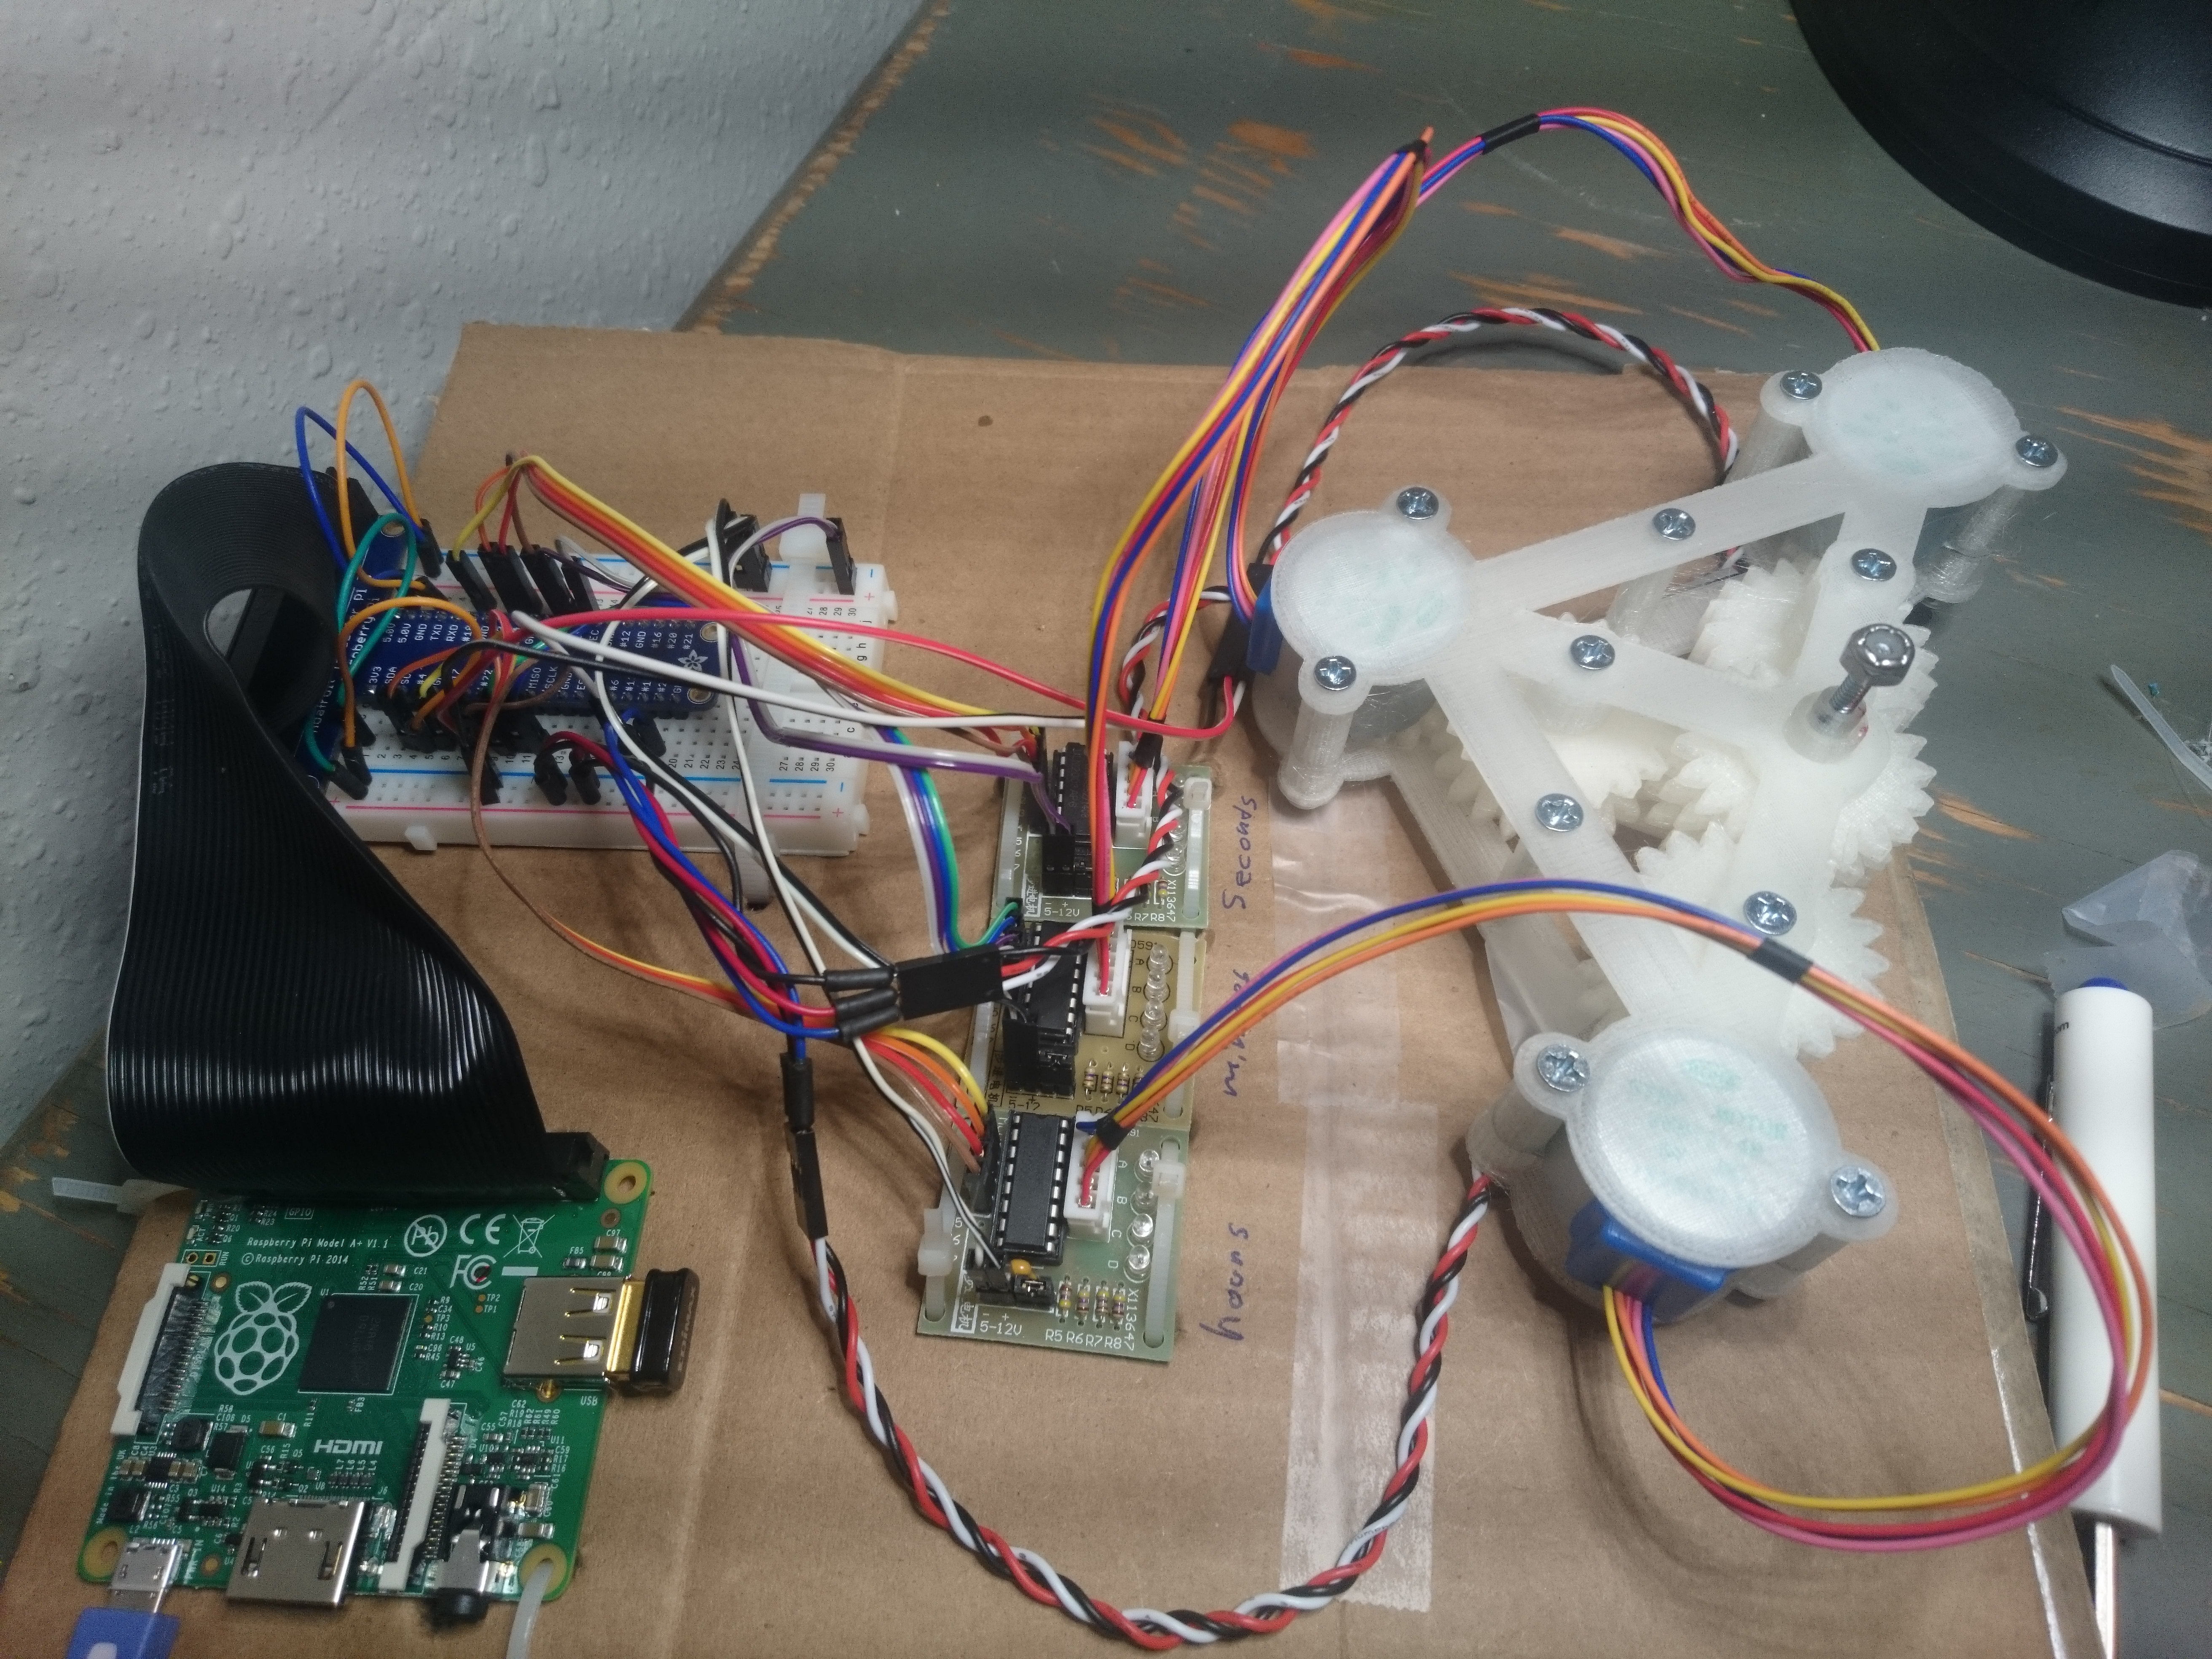 Breadboard, raspberry pi, motor drivers and gearbox all taped to a peice of cardboard.